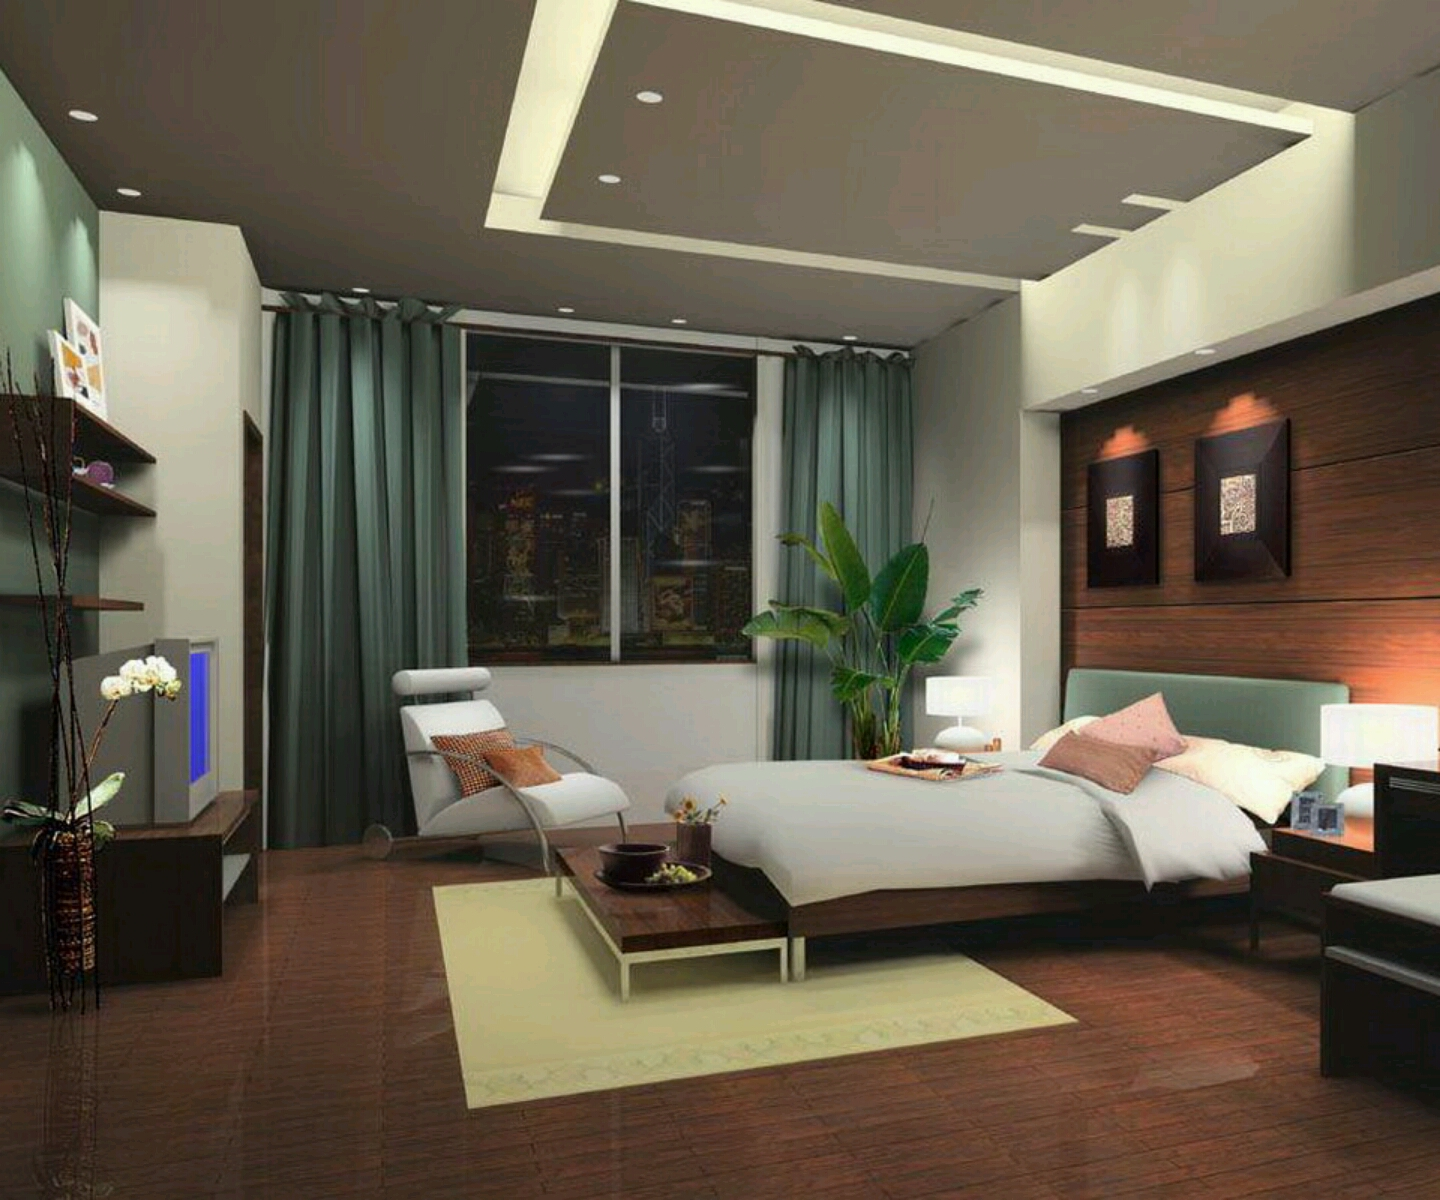 New home designs latest modern bedrooms designs best ideas for Best bedroom ideas 2014